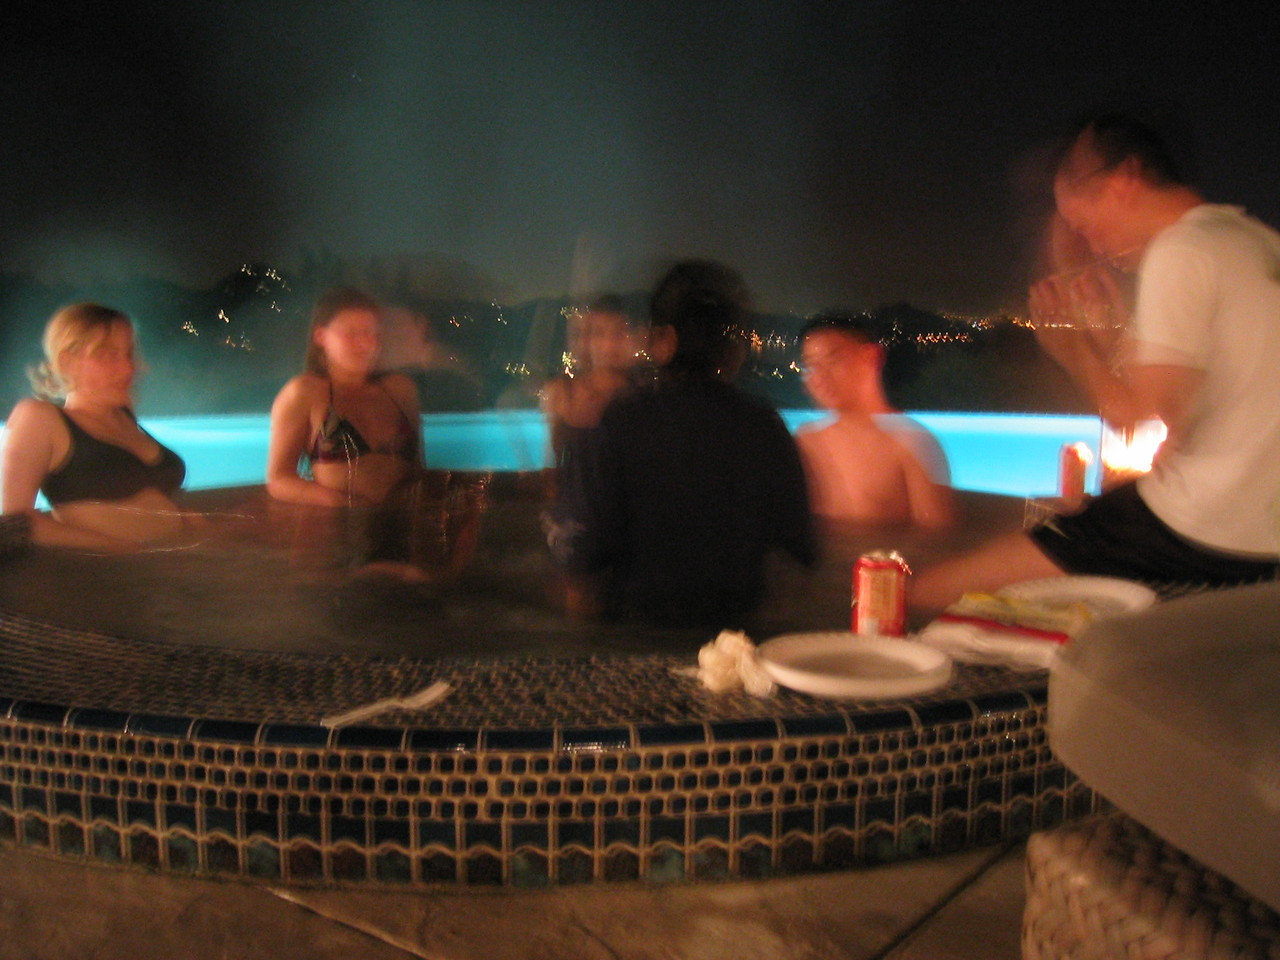 Slow shutter - Hot tub + View